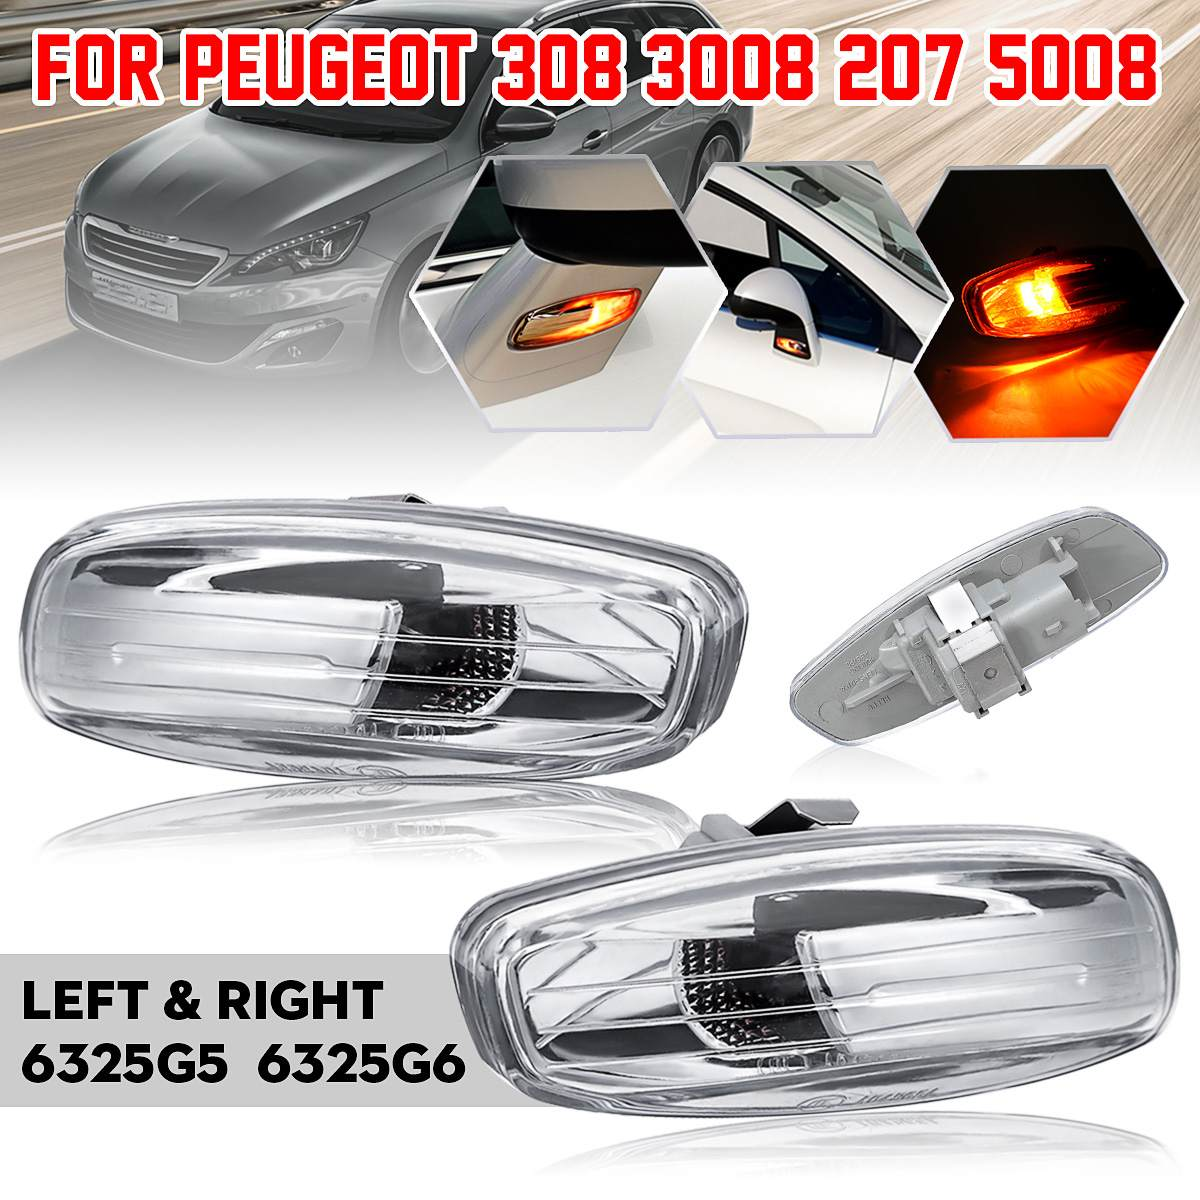 Car <font><b>LED</b></font> Side Indicator Repeater Light Left Right <font><b>Lamp</b></font> 6325G5 6325G6 For <font><b>Peugeot</b></font> <font><b>308</b></font> 3008 207 5008 image